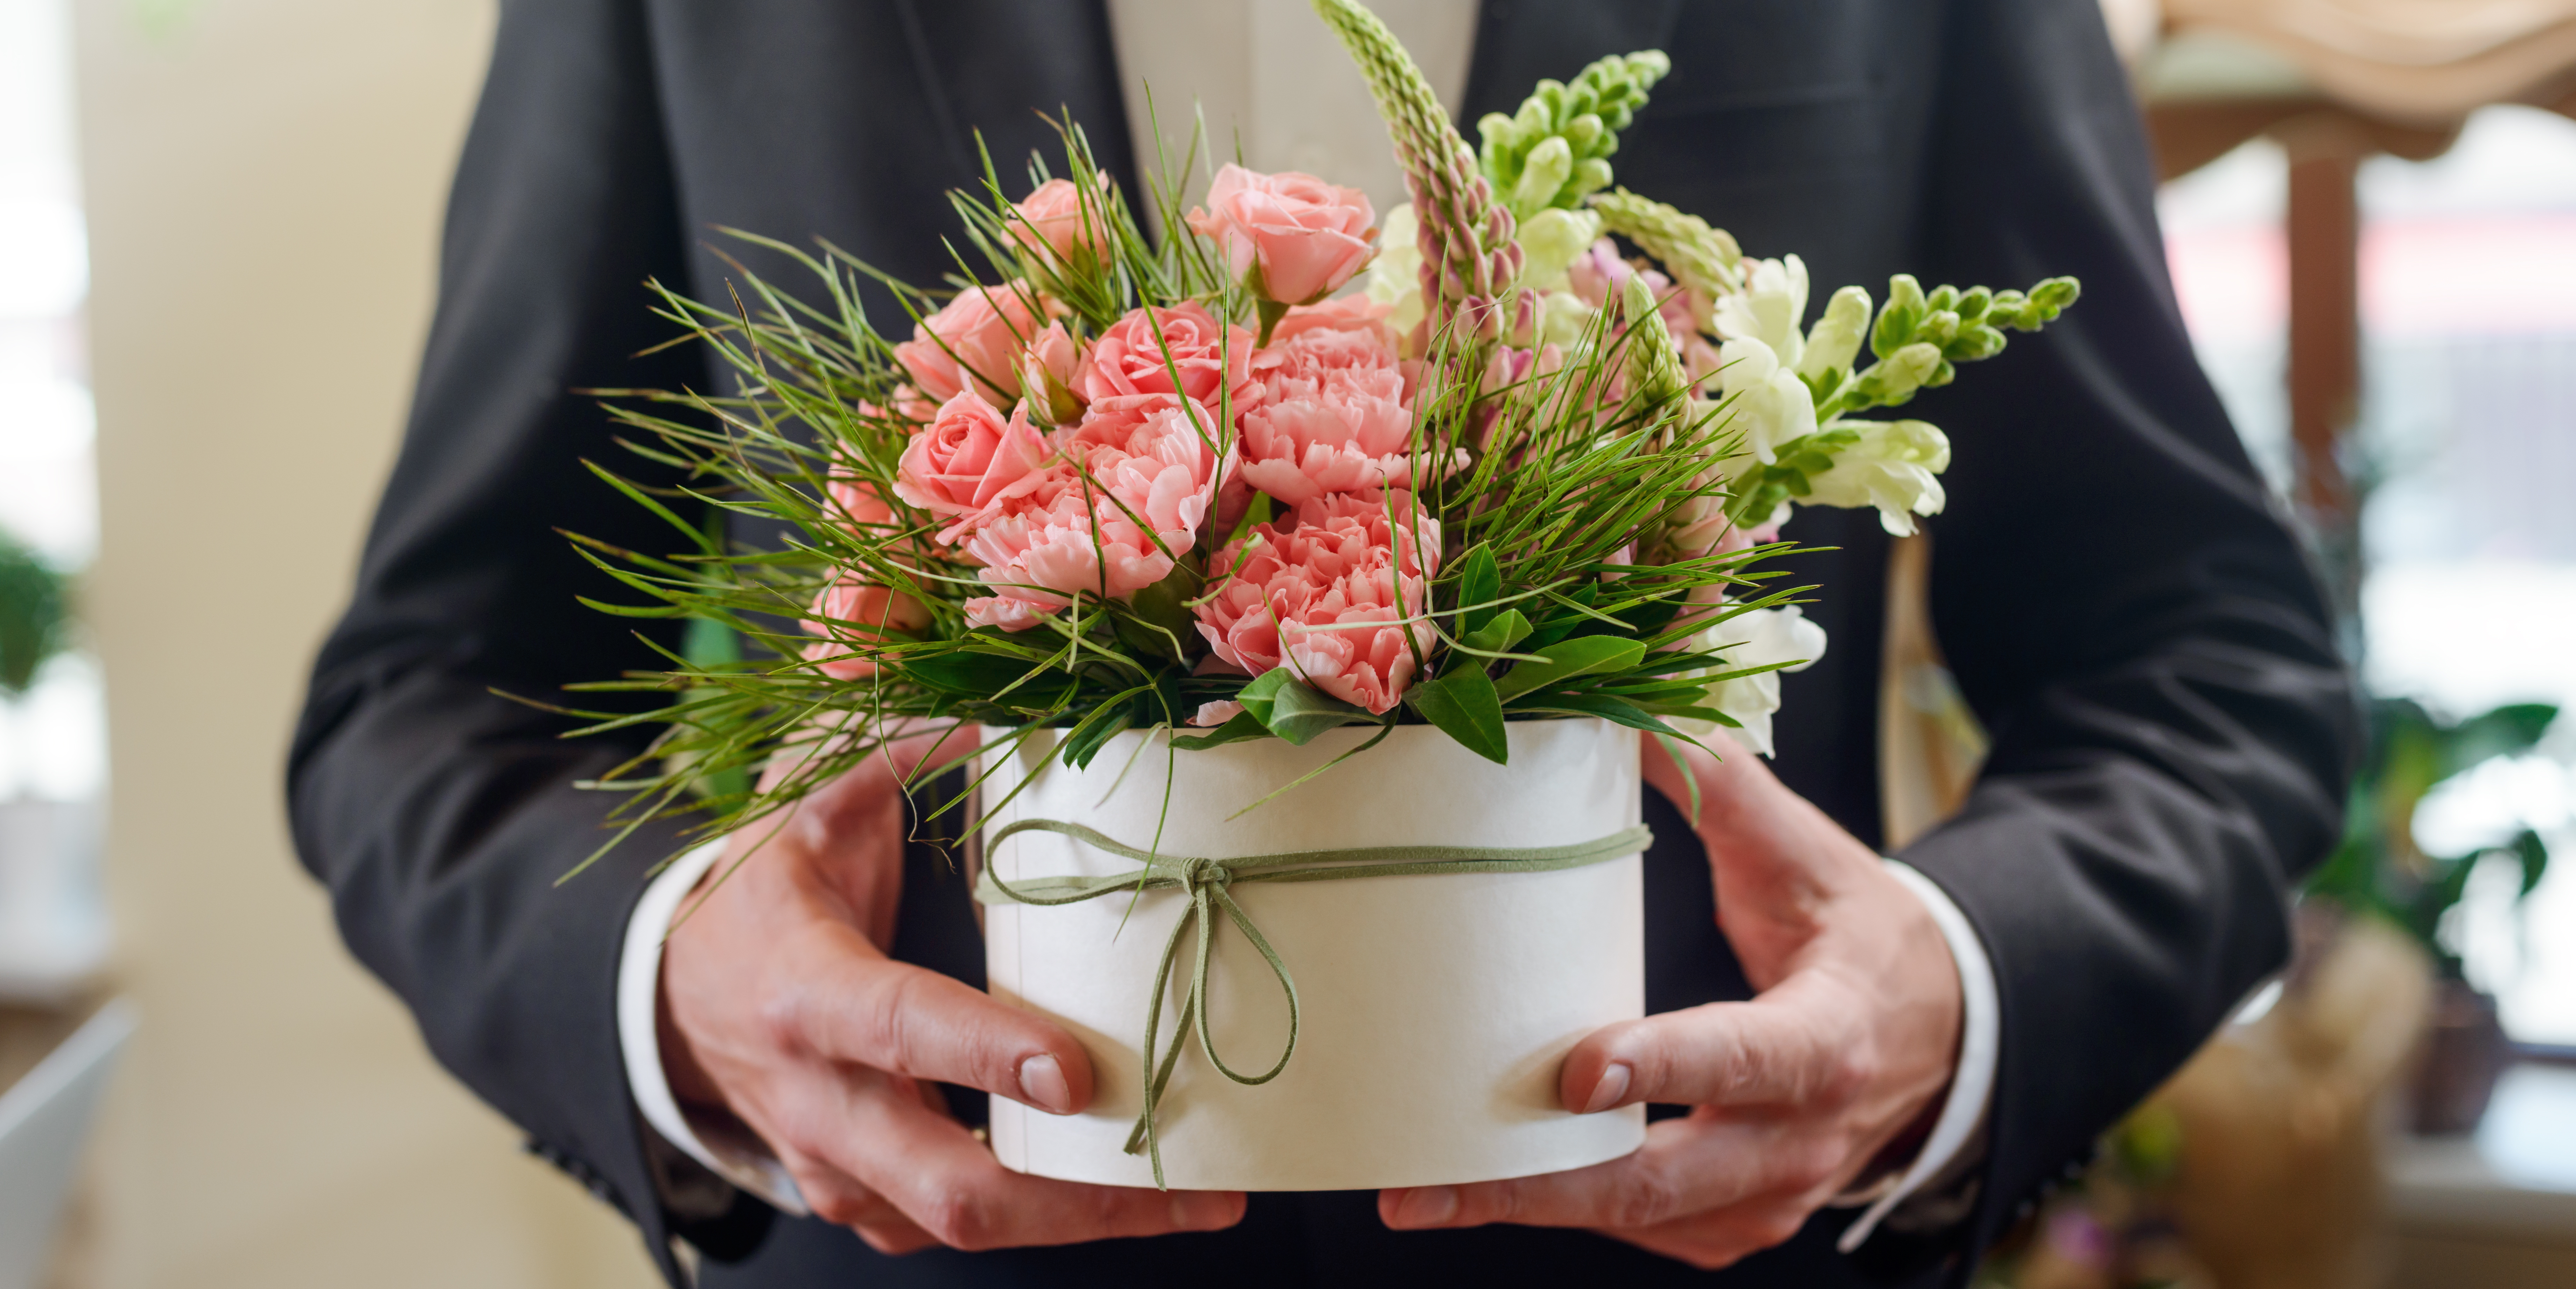 A man in suit carrying a pot of pink flowers